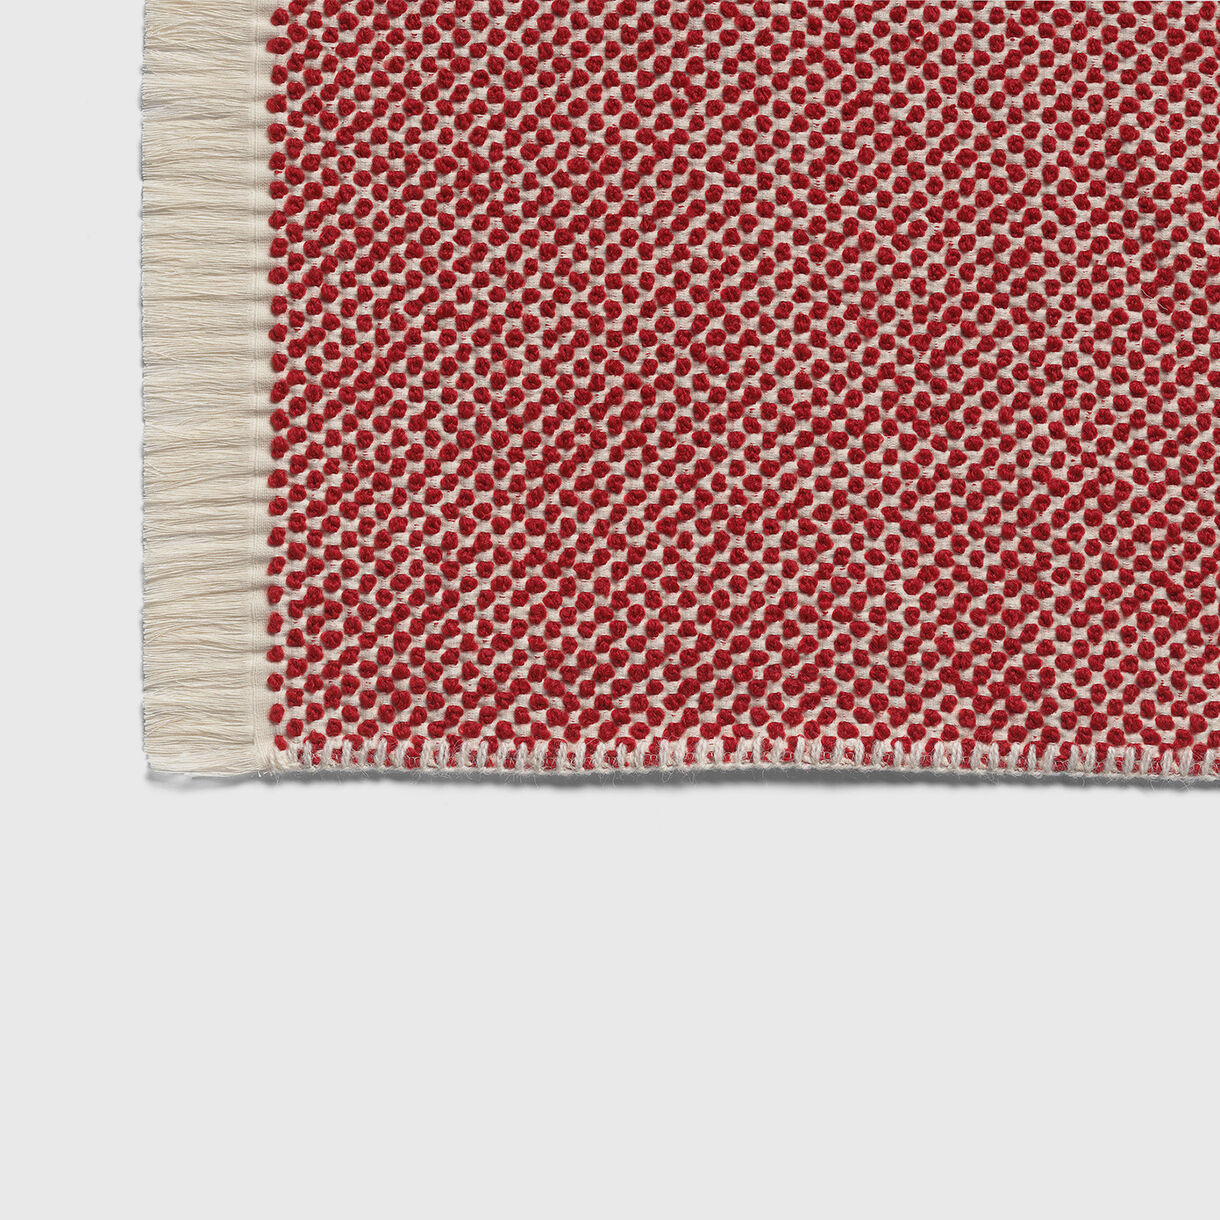 Dotto Blanket, Red